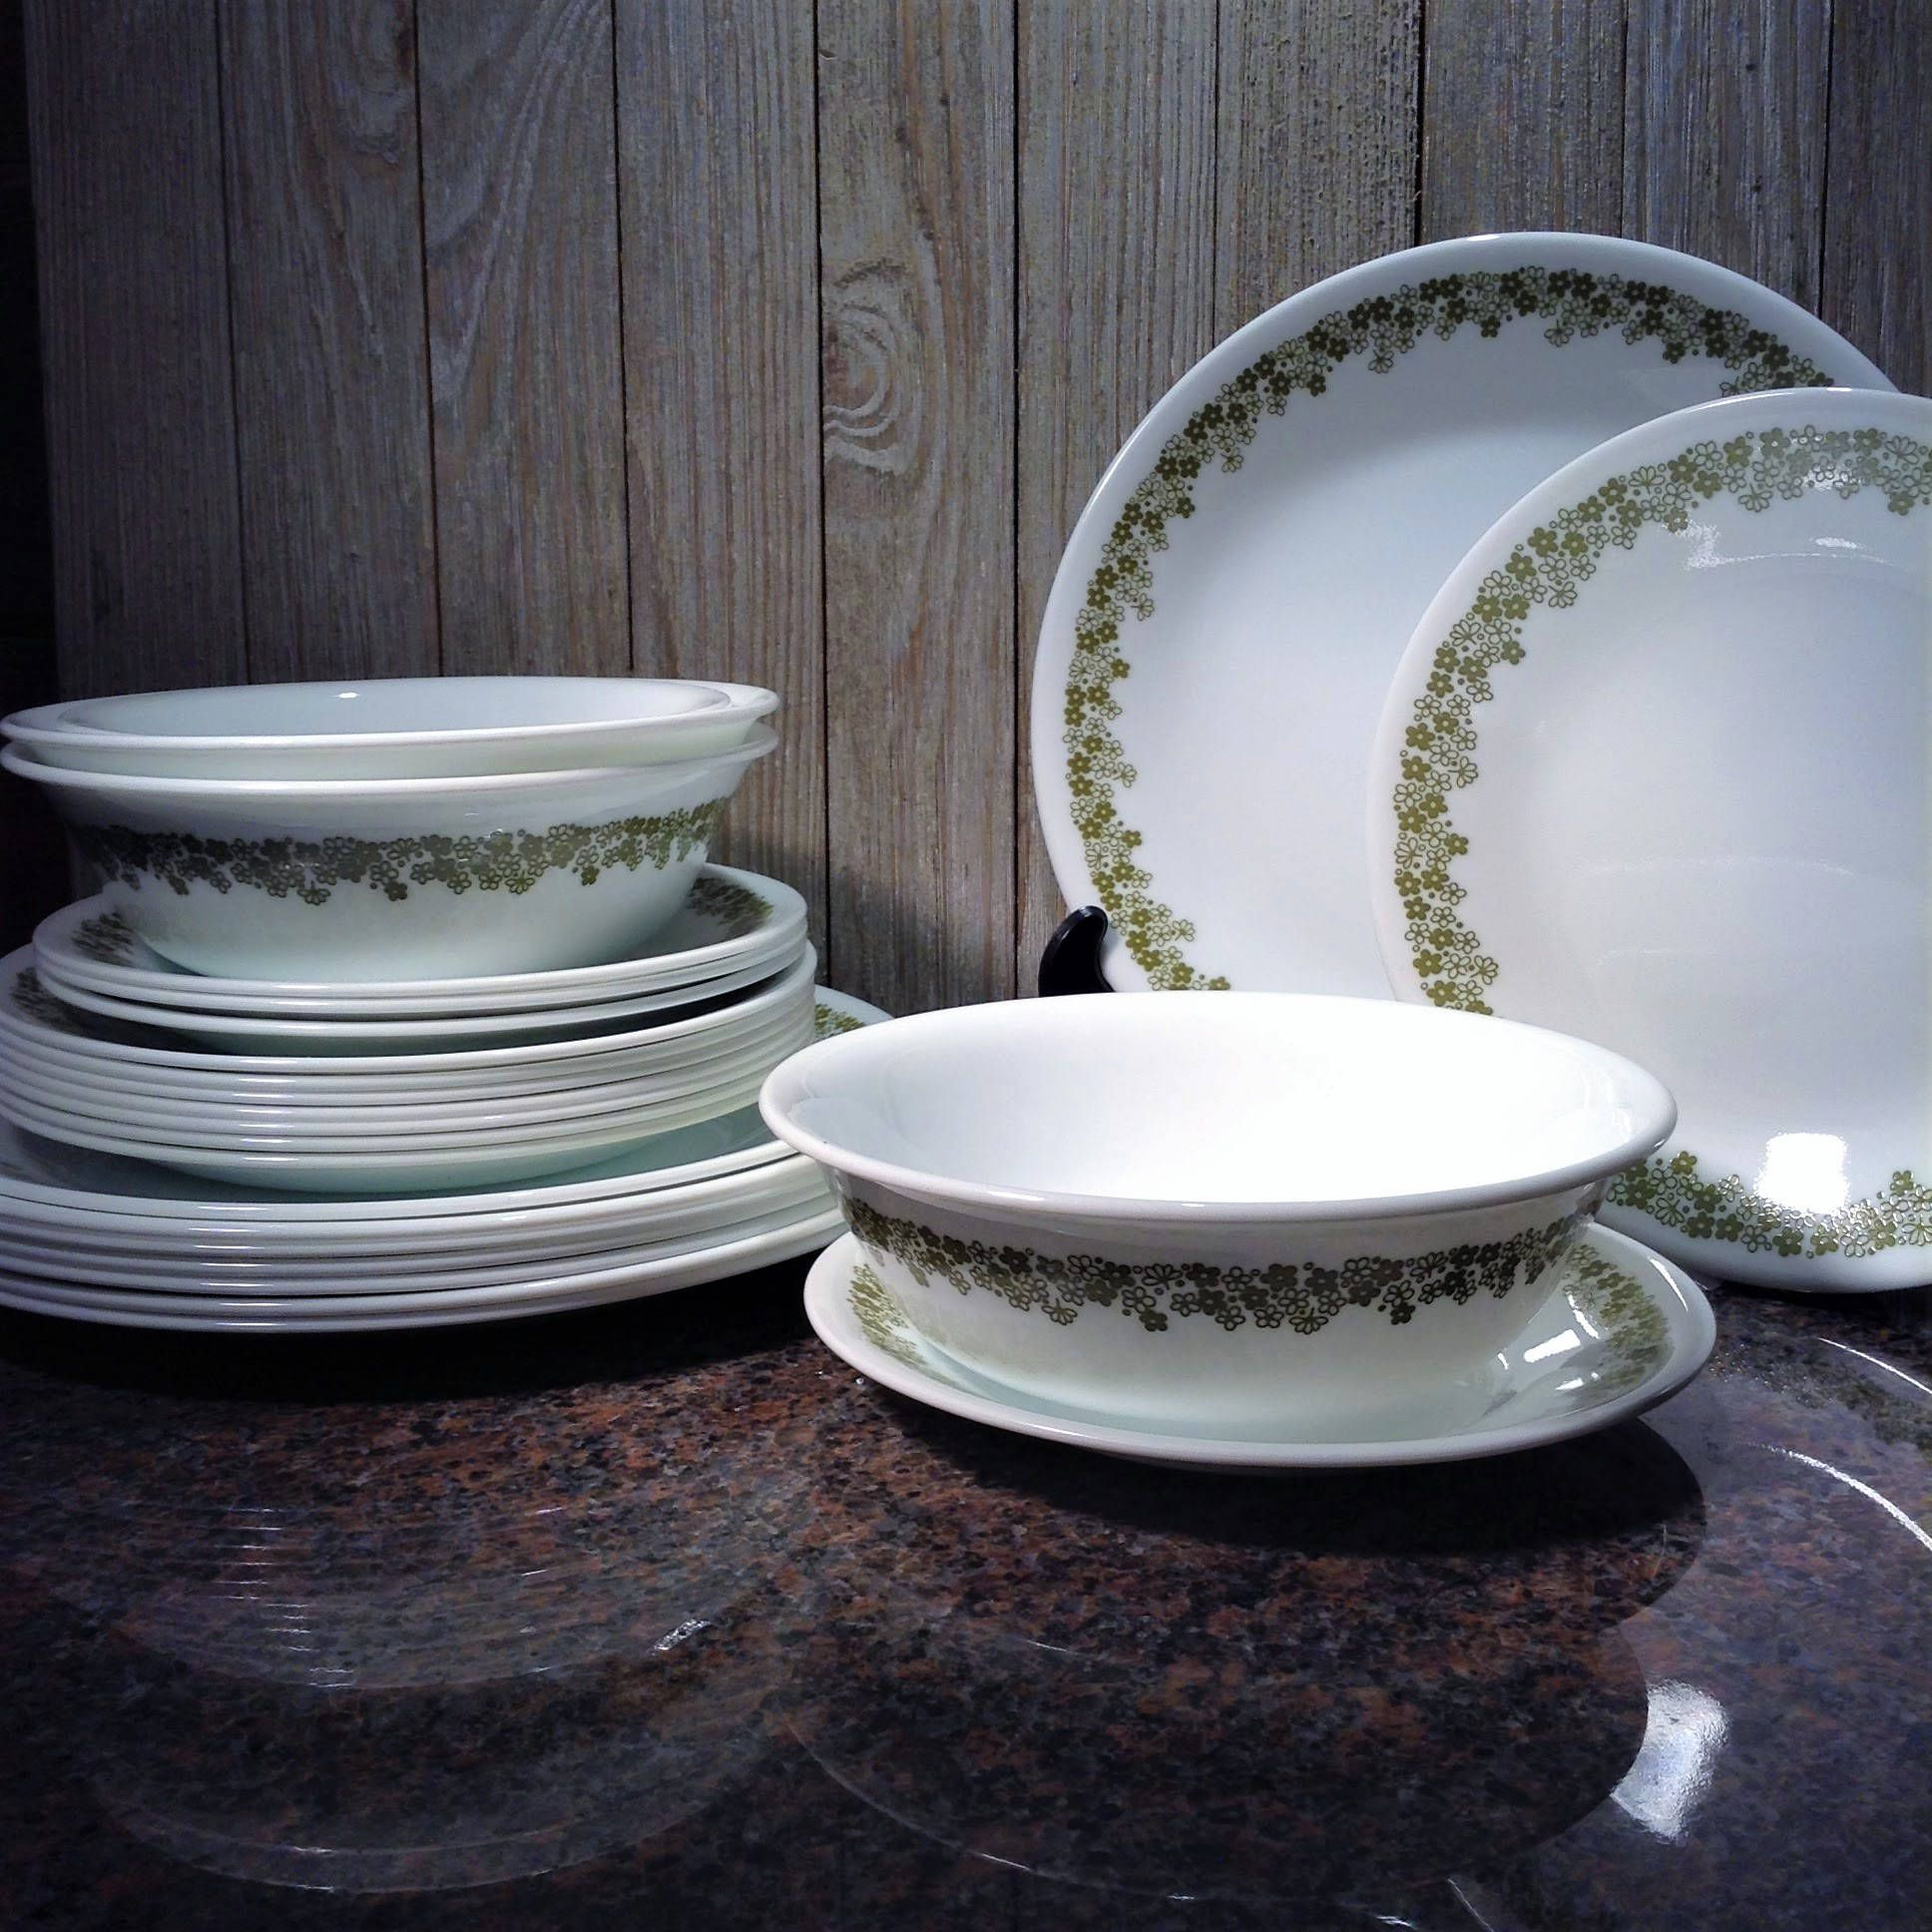 Corelle 25 Pc Crazy Daisy Spring Blossom Dinnerware Set Corning